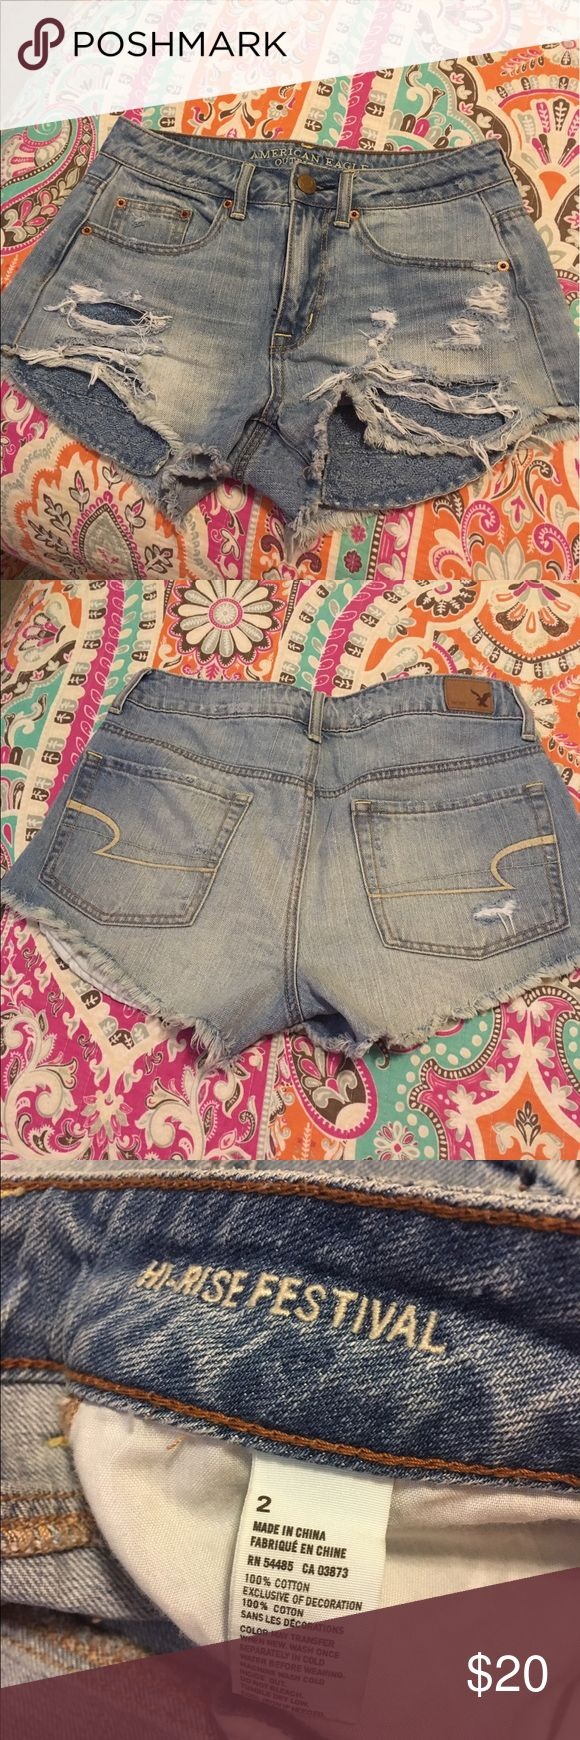 Like New American Eagle Jean shorts!! Like New American Eagle Jean shorts!! Size 2 Hi Rise Festival style. American Eagle Outfitters Jeans